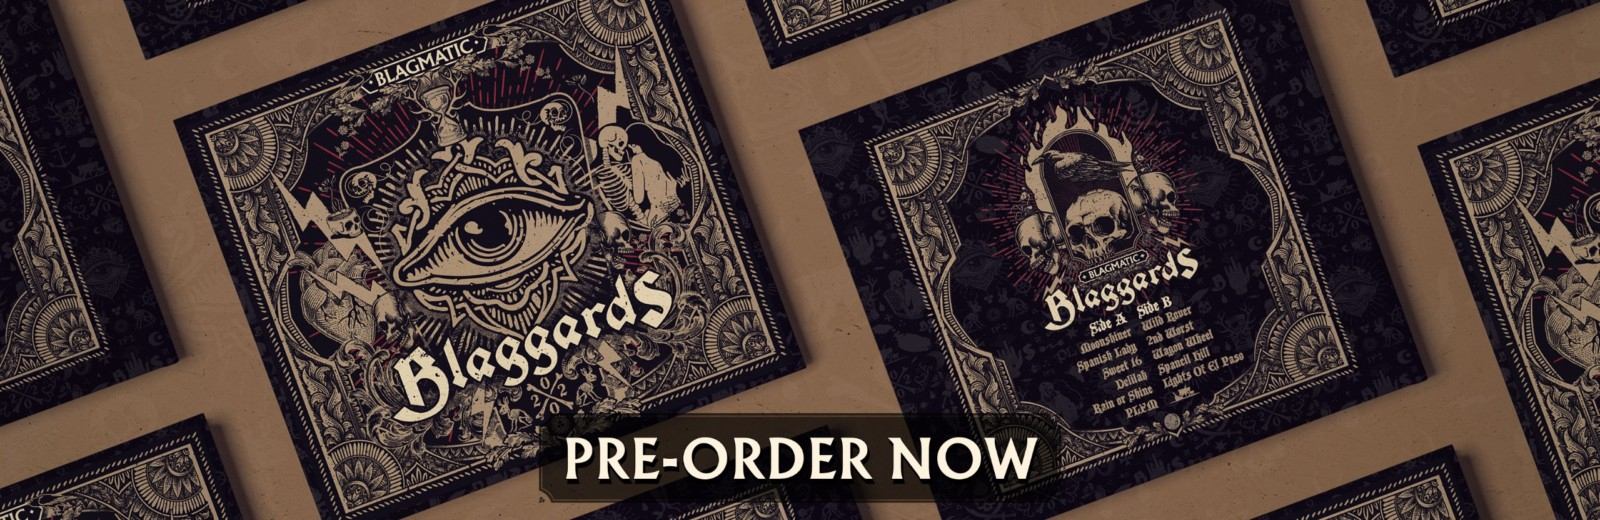 Pre-order our new album BLAGMATIC today!